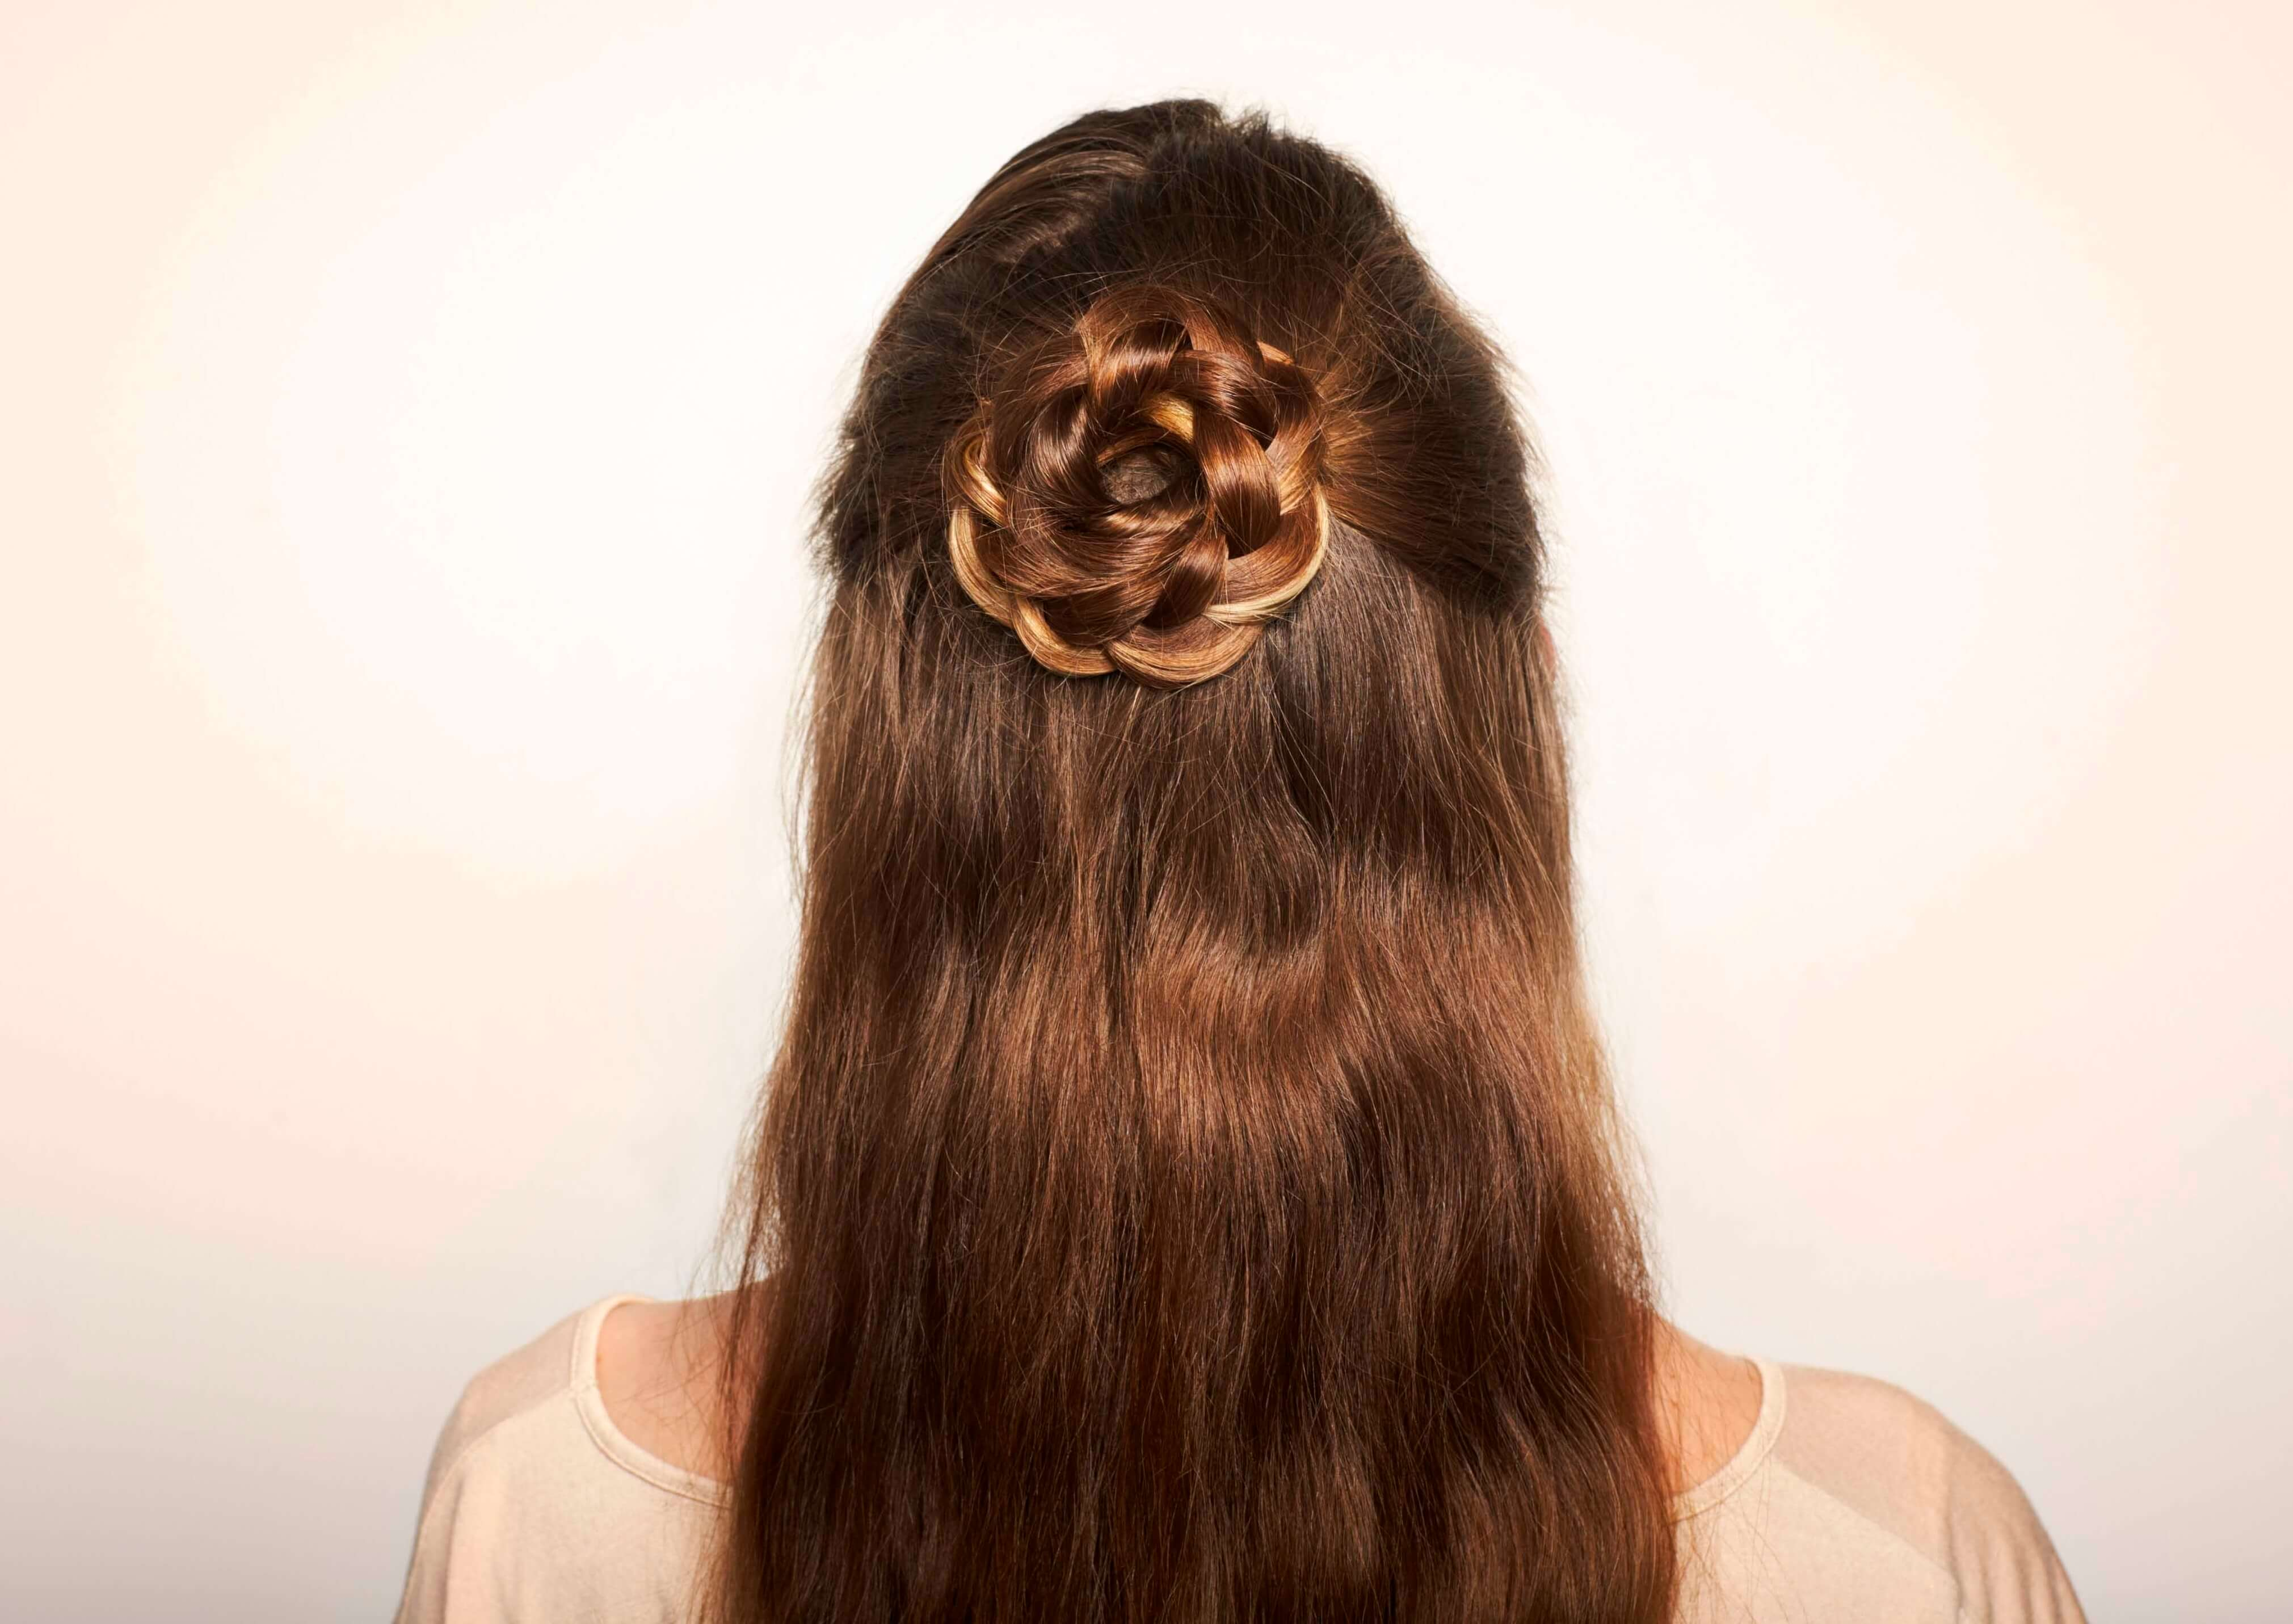 girl with long brown hair wearing a flower braid hairstyle